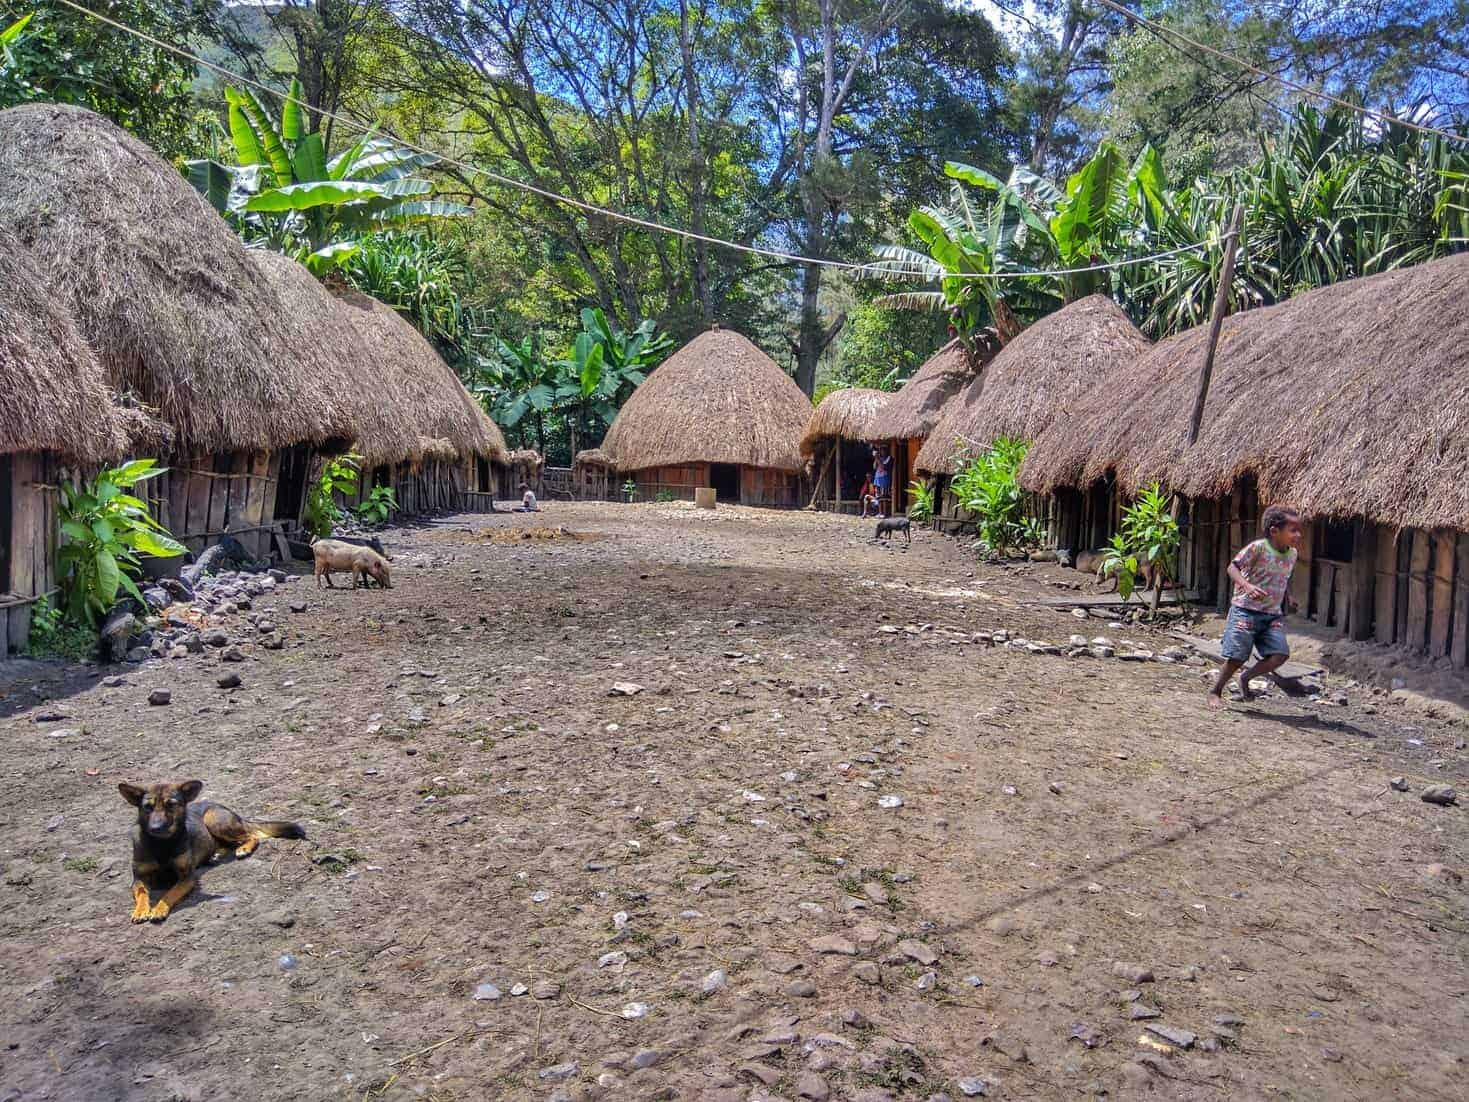 Traditionally Dani tribes lived in circular thatch-roof huts